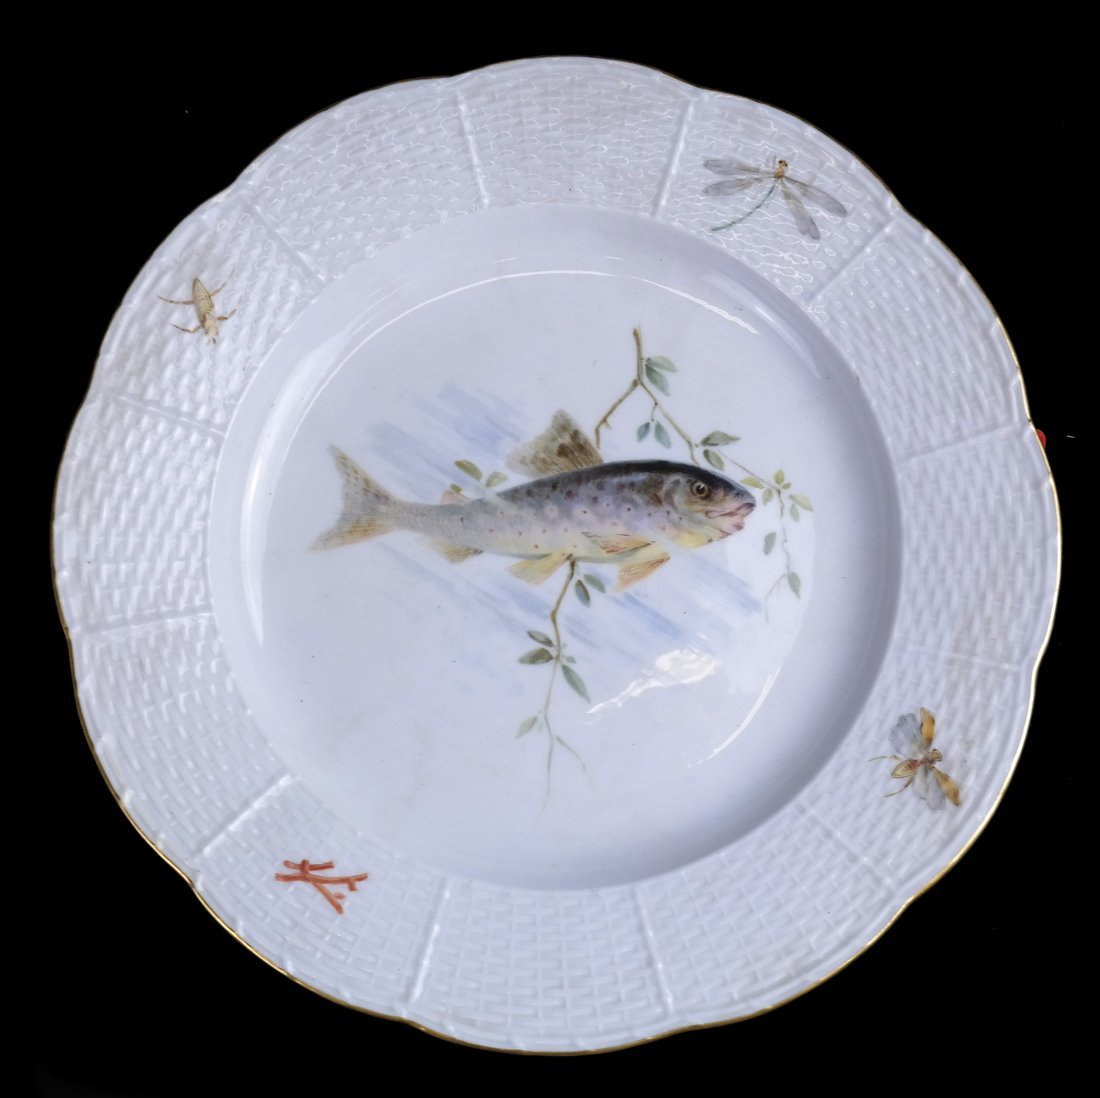 Set of 5 Meissen Porcelain Fish Plates - 6